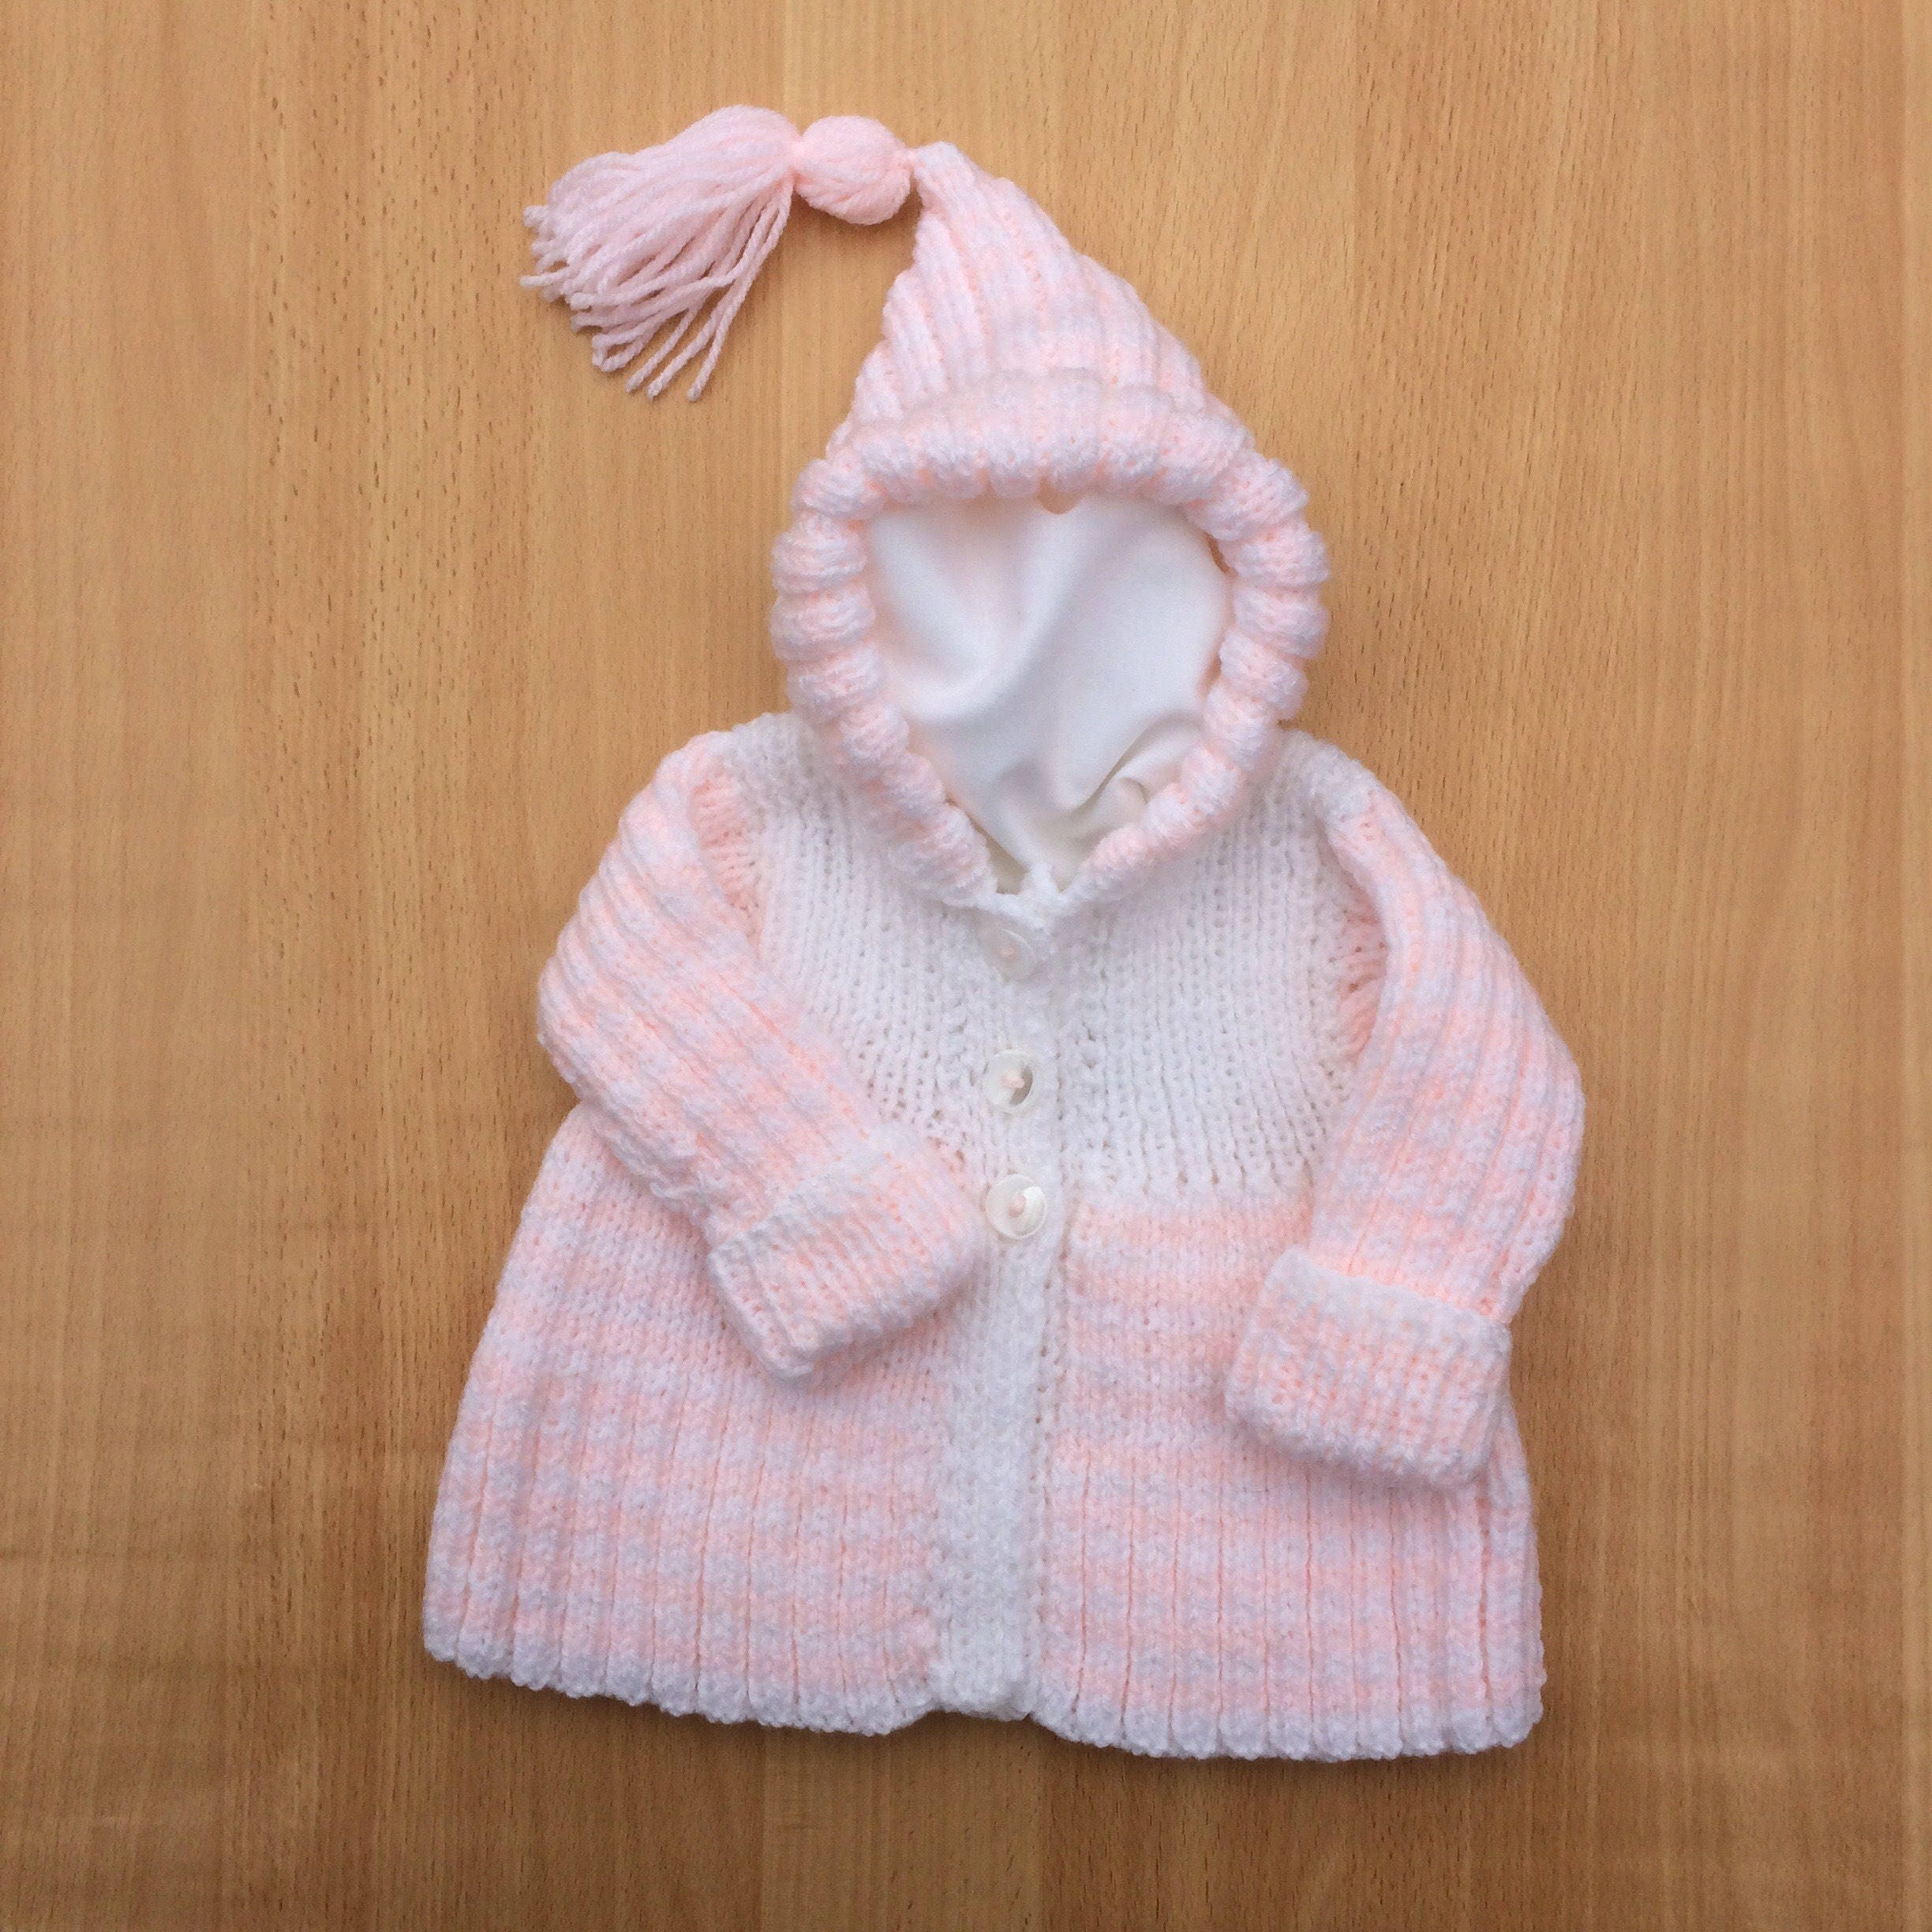 Hand knitted baby cardigan peach white coloured baby